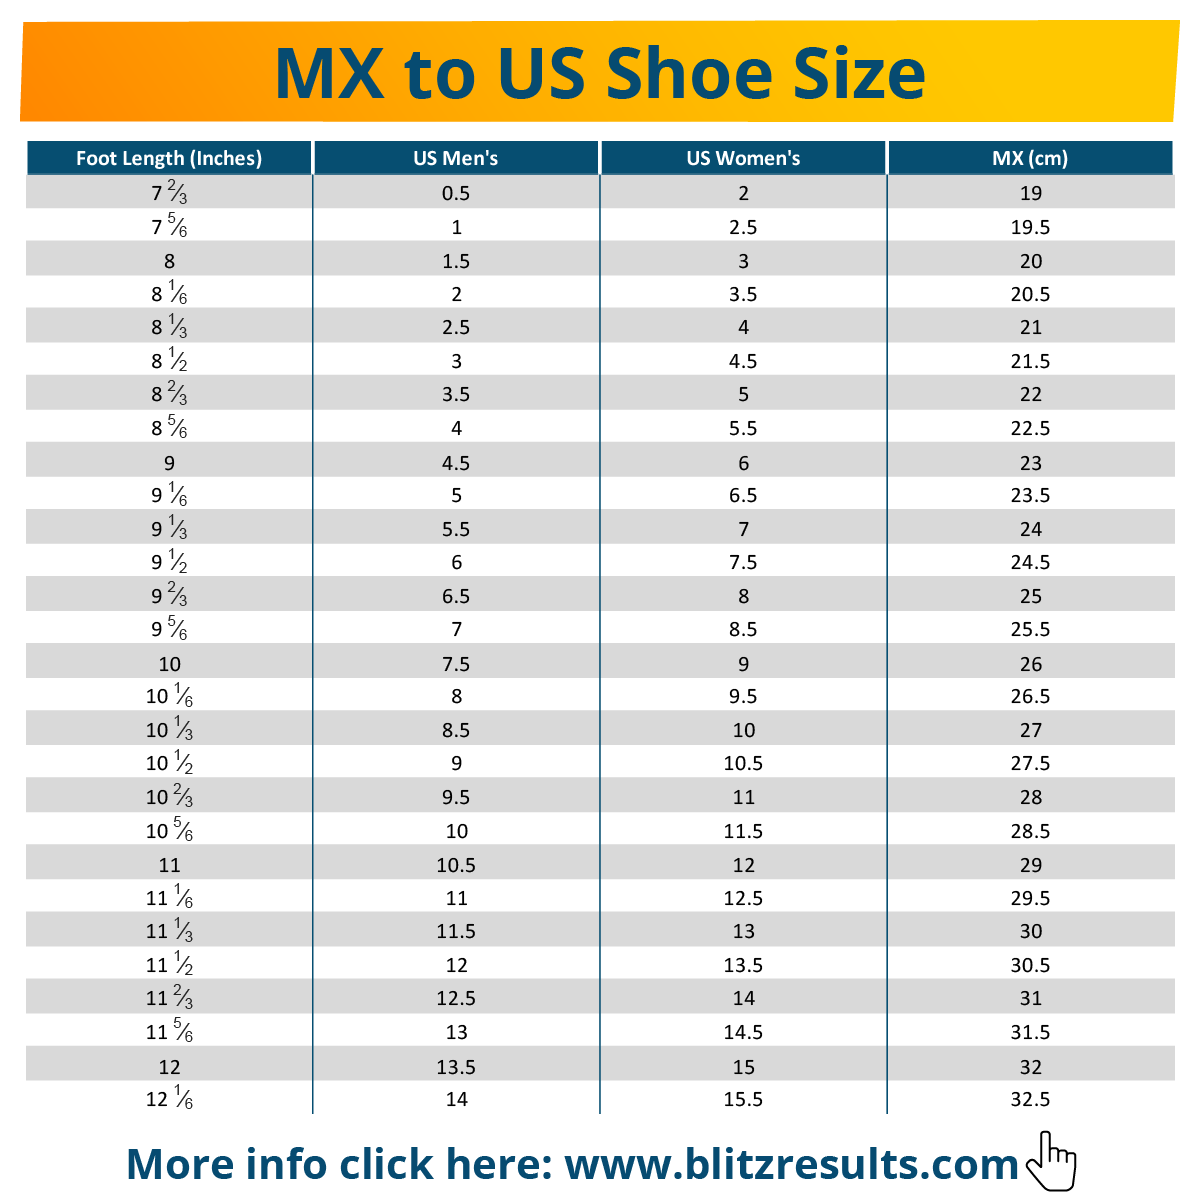 Shoe Size In Mexico.ᐅ Mexican Shoe Size Conversion Charts For Men Women Kids